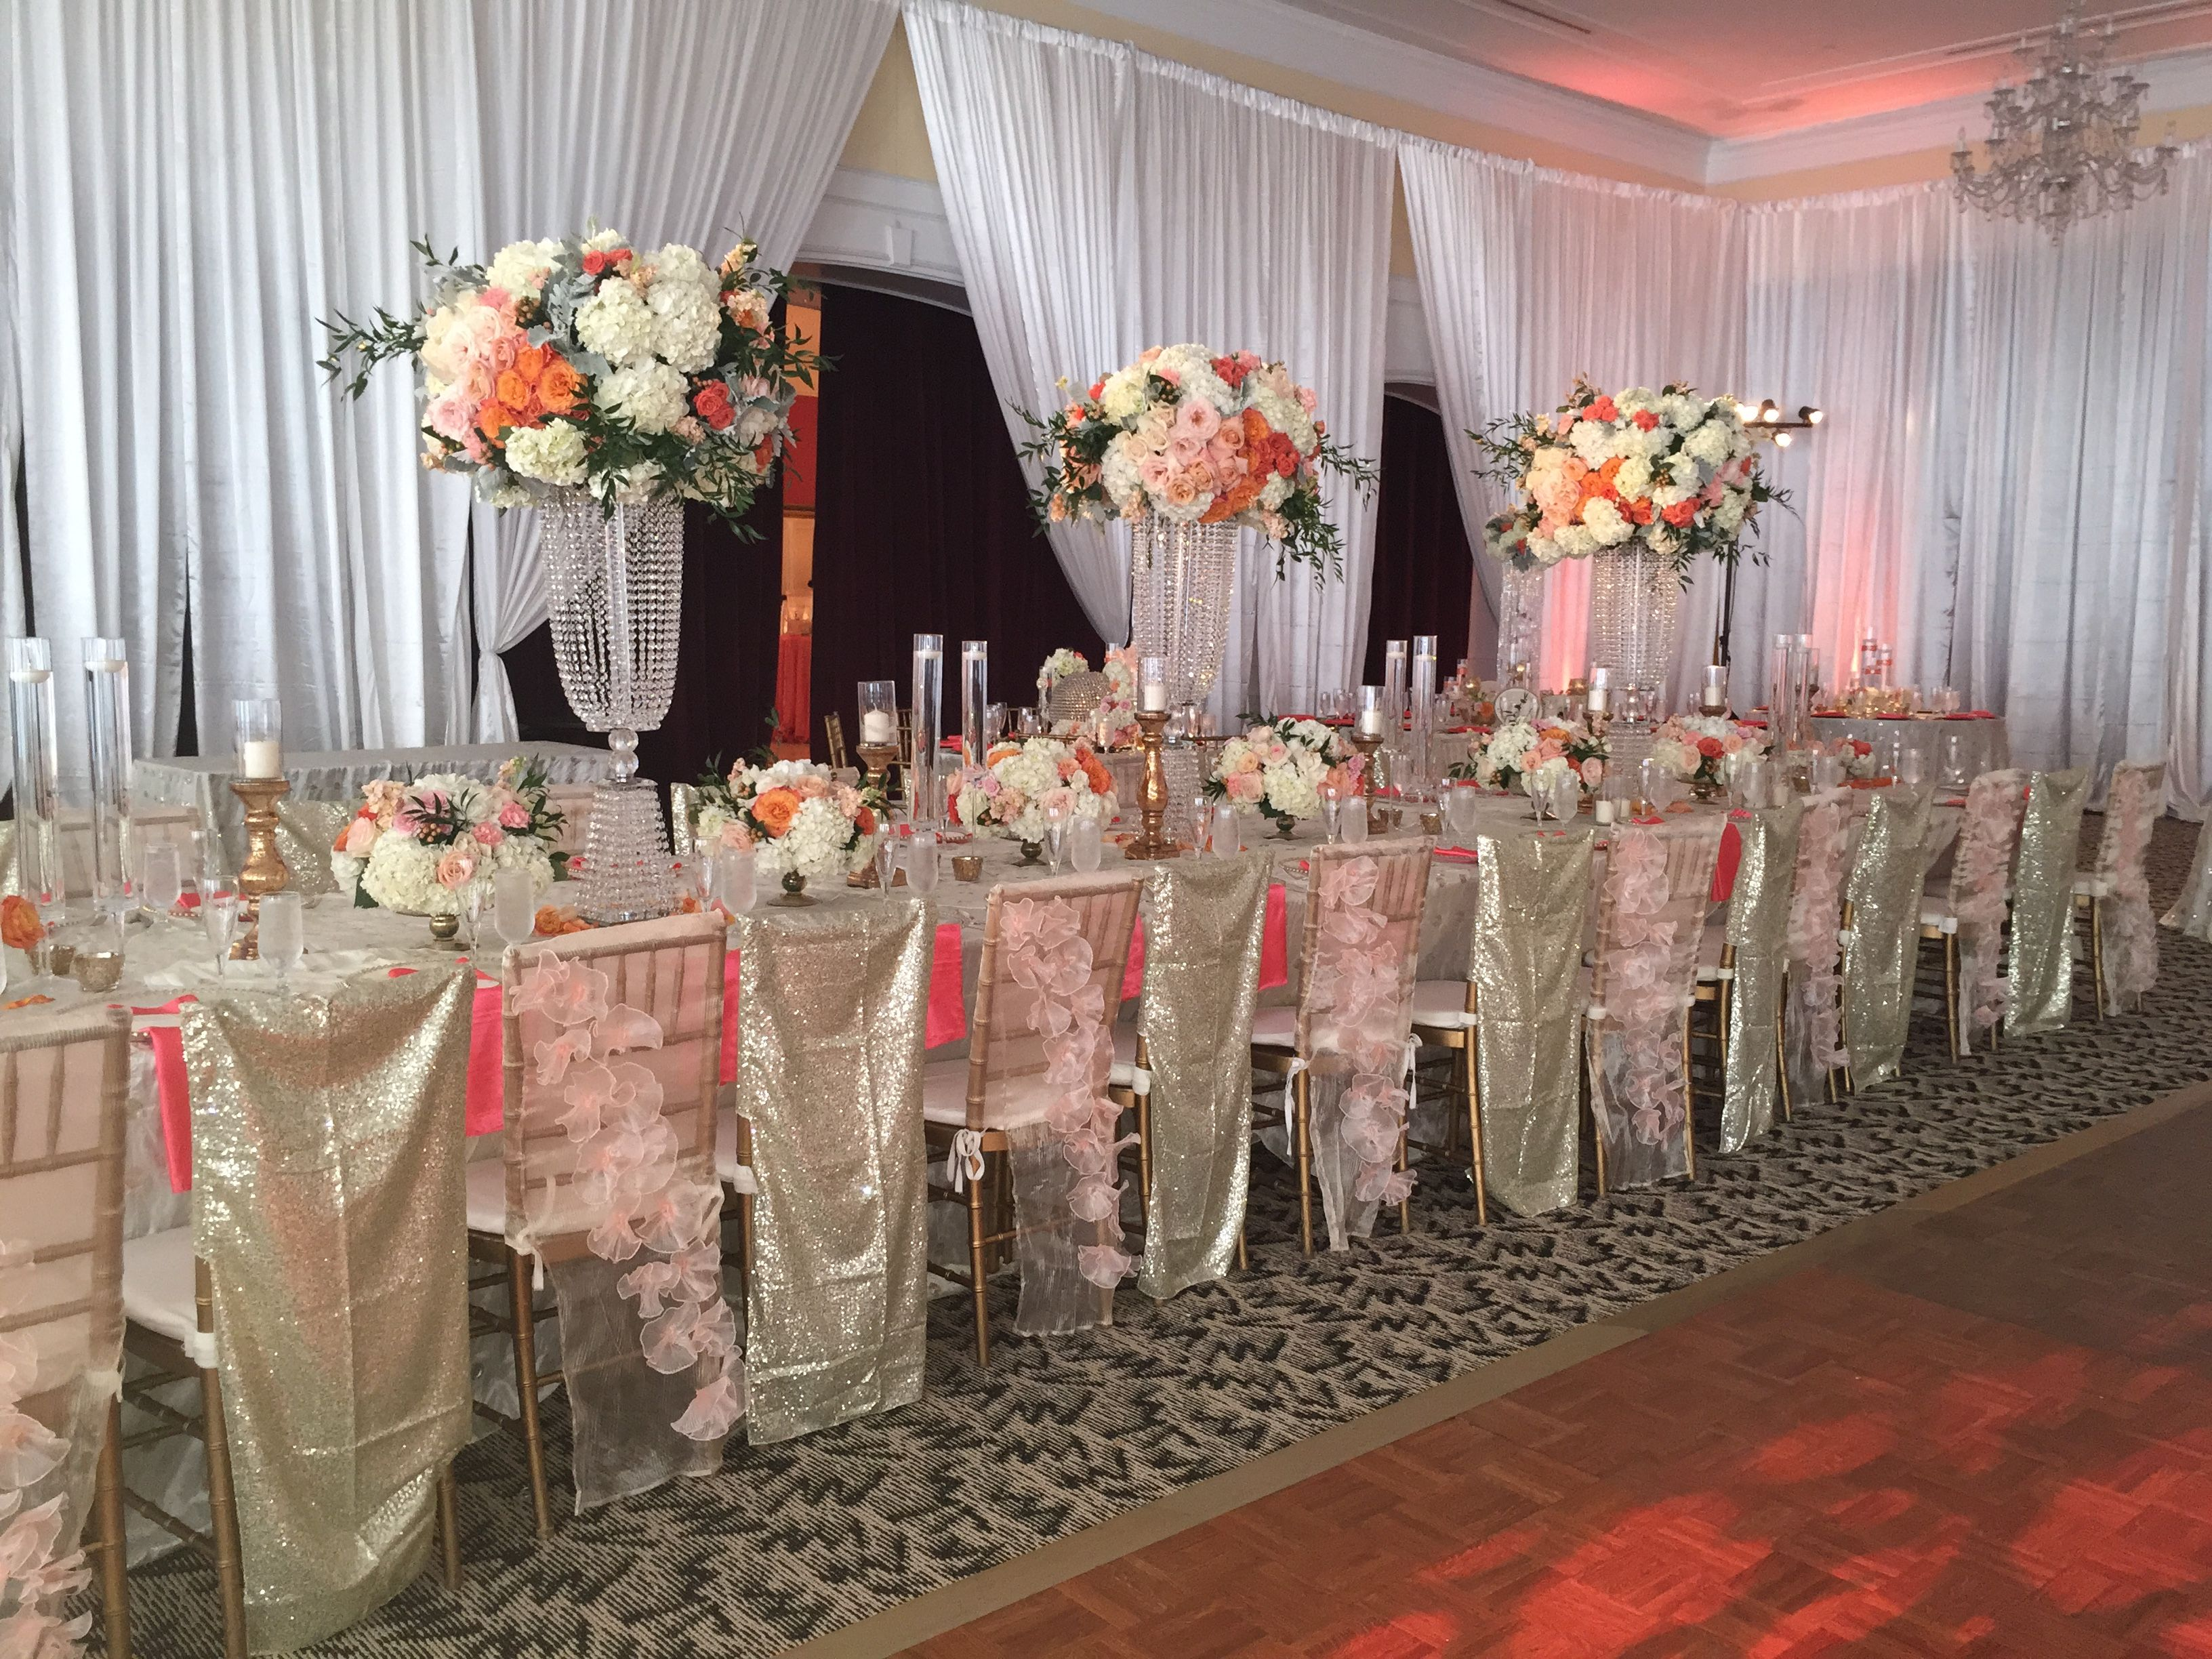 Beautifully Decorated Wedding At Foxchase Manor In Manassas Va